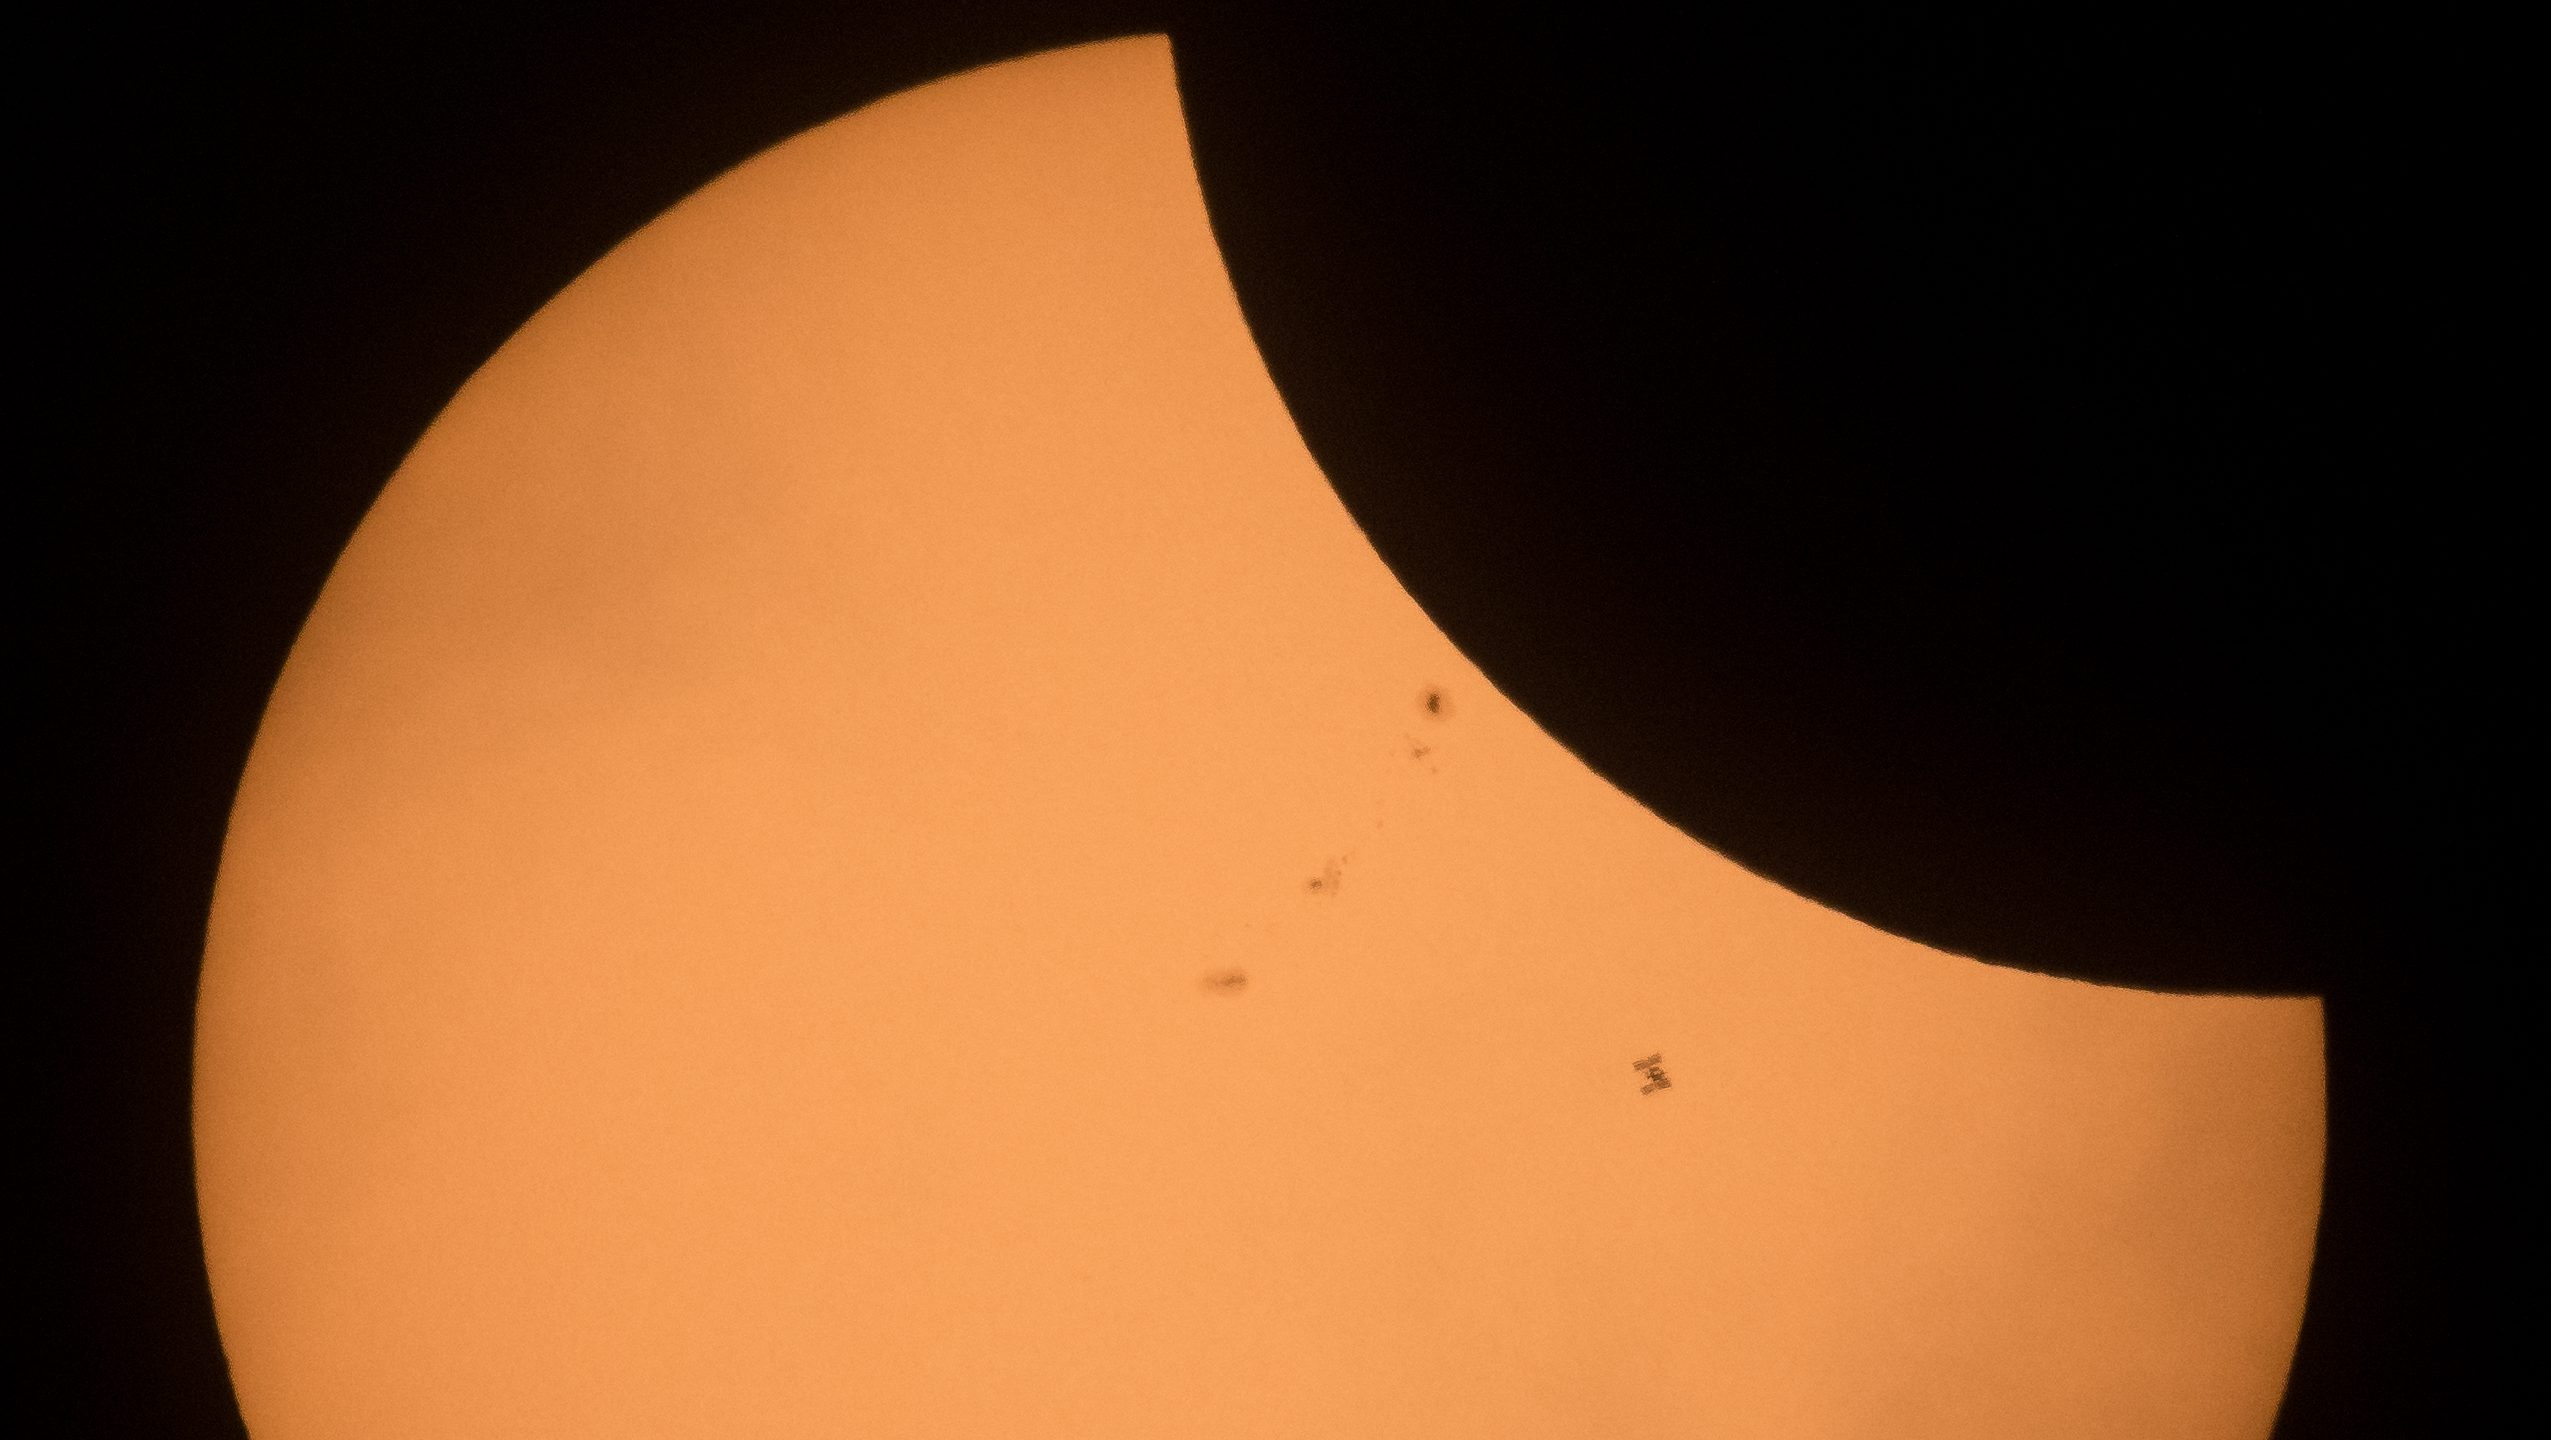 2017 Total Solar Eclipse - ISS Transit